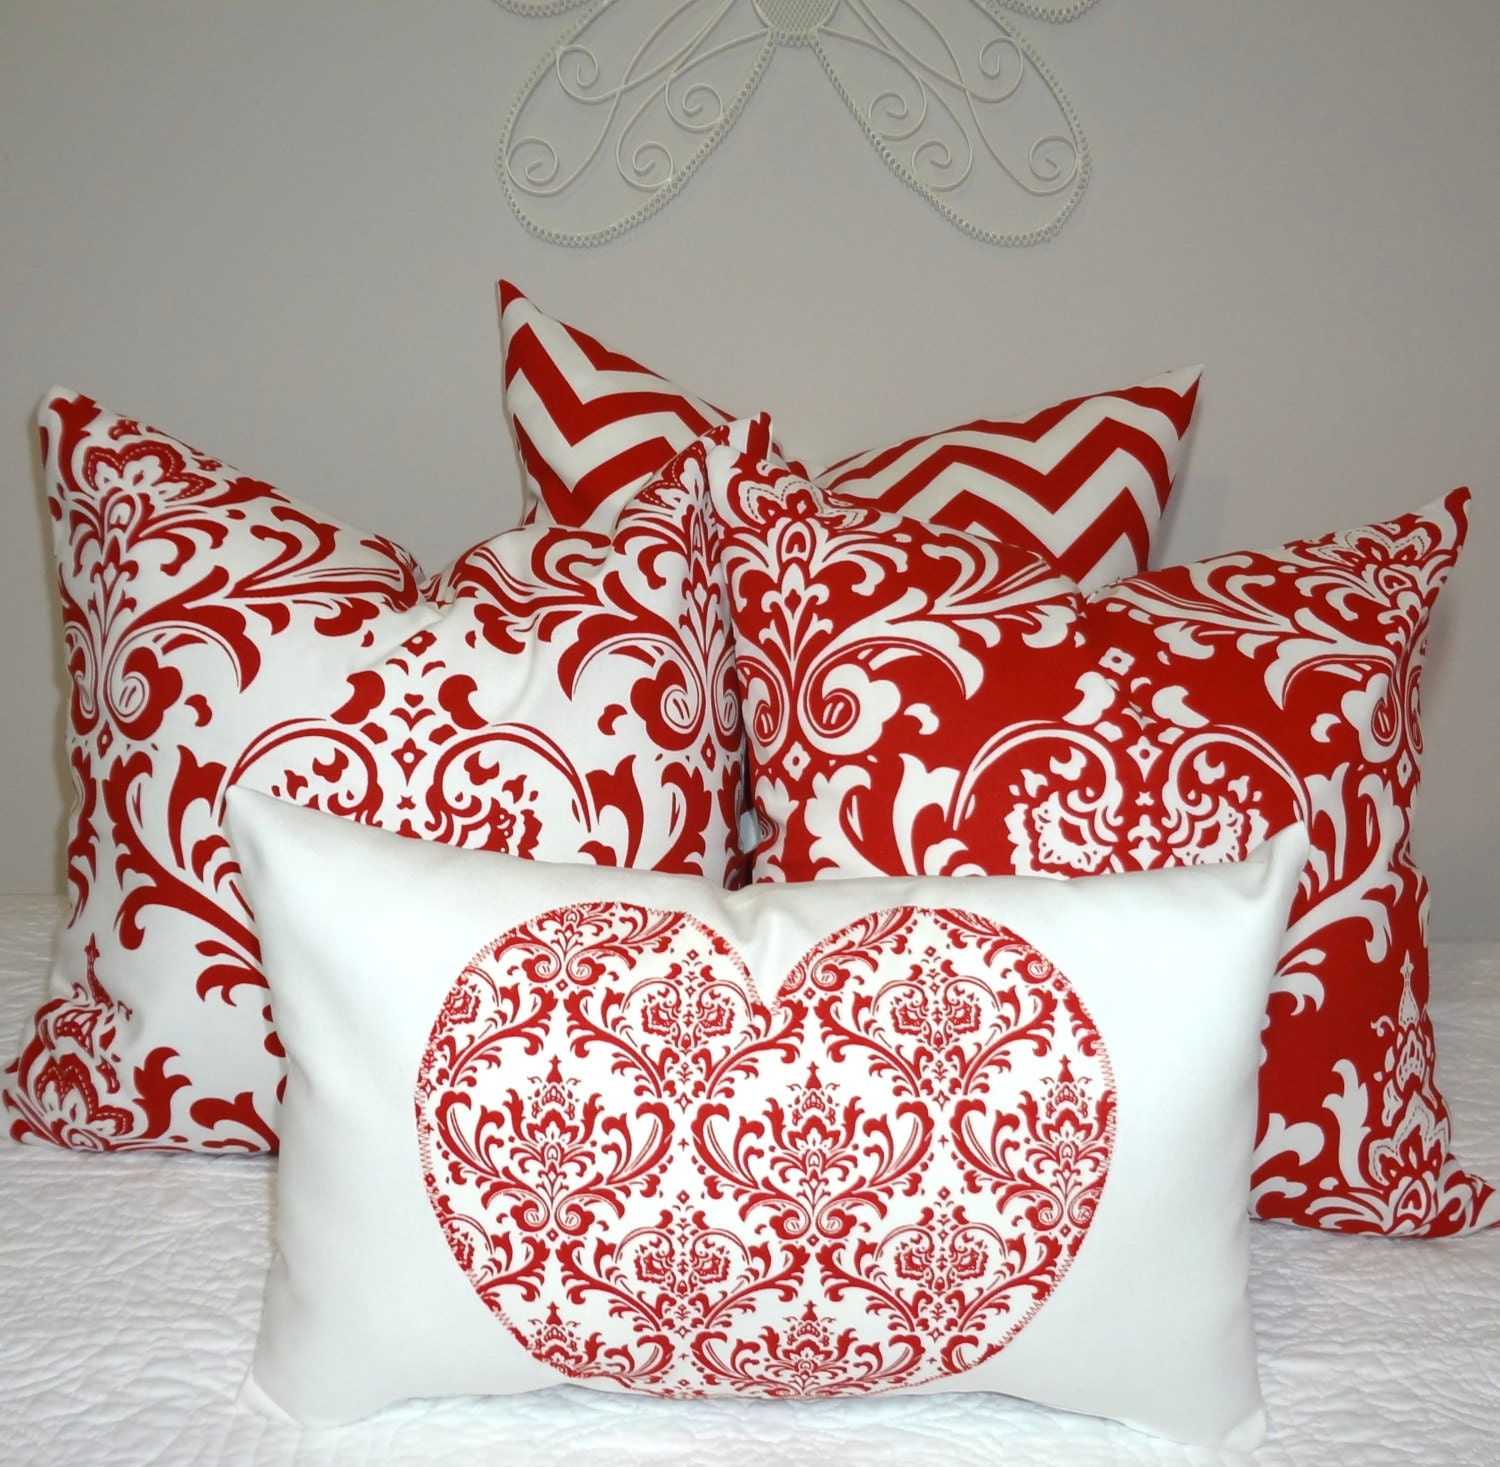 Decorative Valentine Pillows : Decorative Valentine Heart Pillow Lumbar Valentine Red Damask